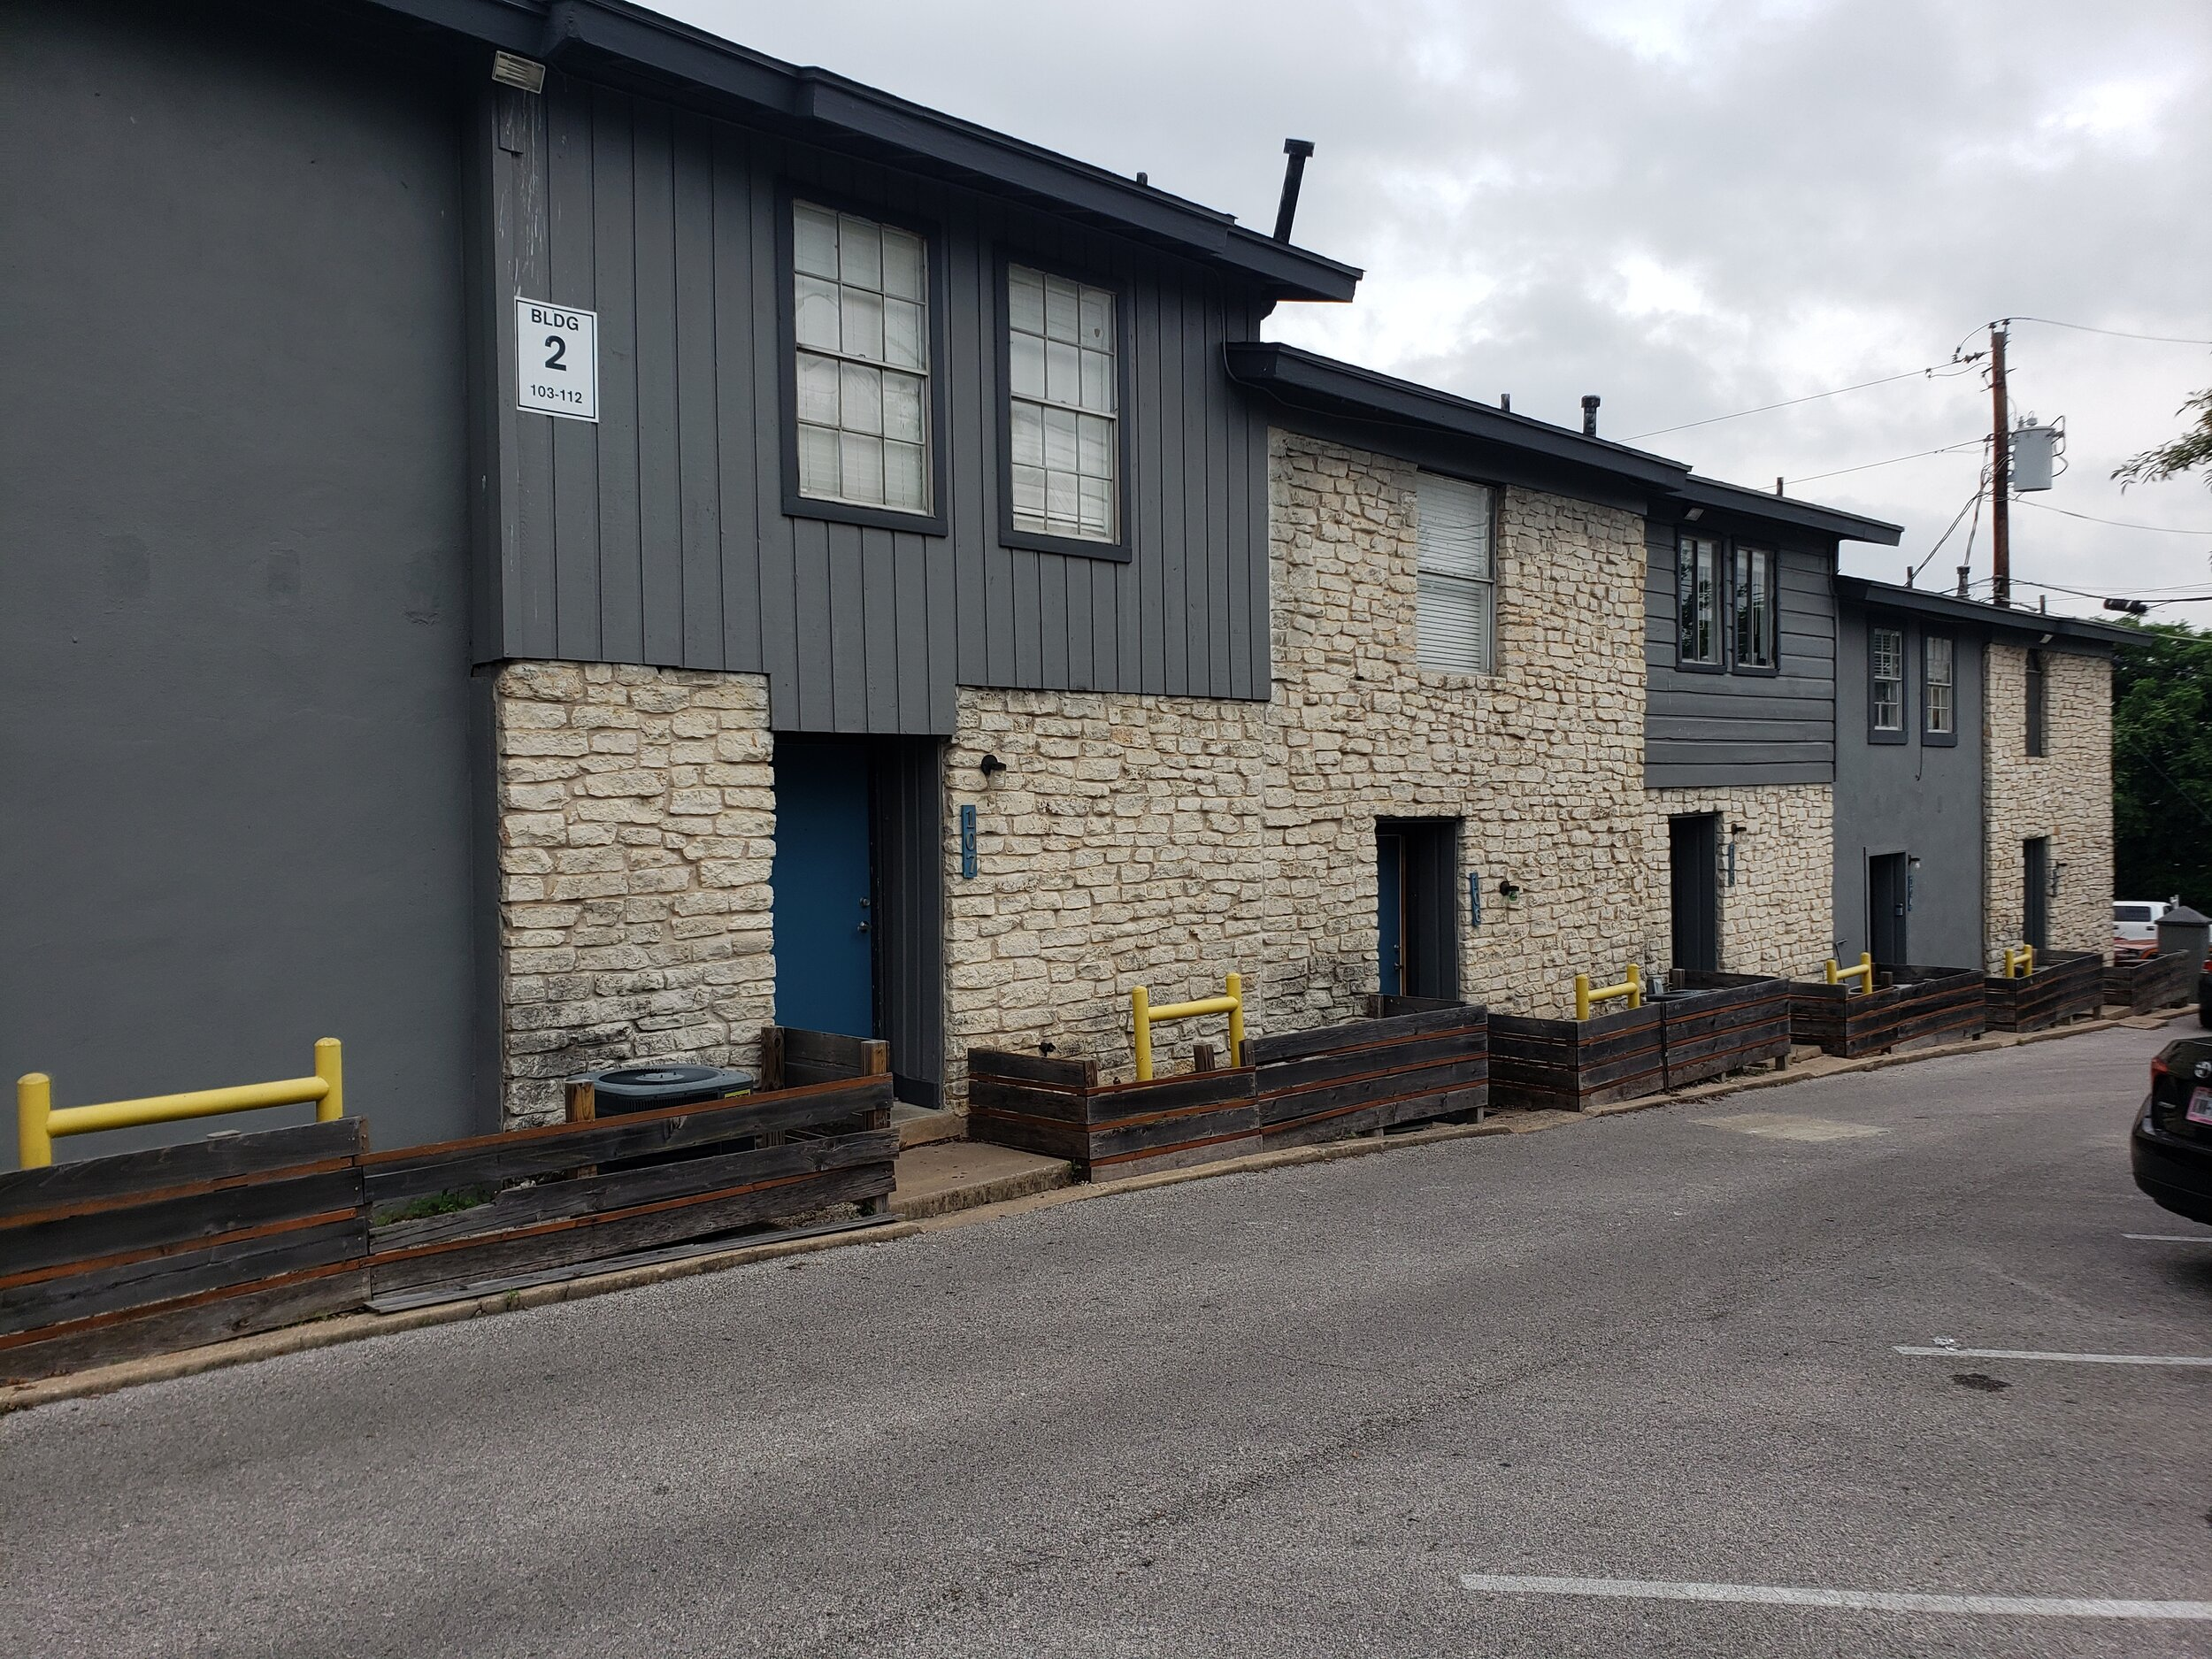 Parker Heights/Flats - 53 Unit Complex in Austin, TX.Purchased in August 2019Renovations Beginning October 2019Projected Hold Time : 5+ YearsProjected IRR: 18%